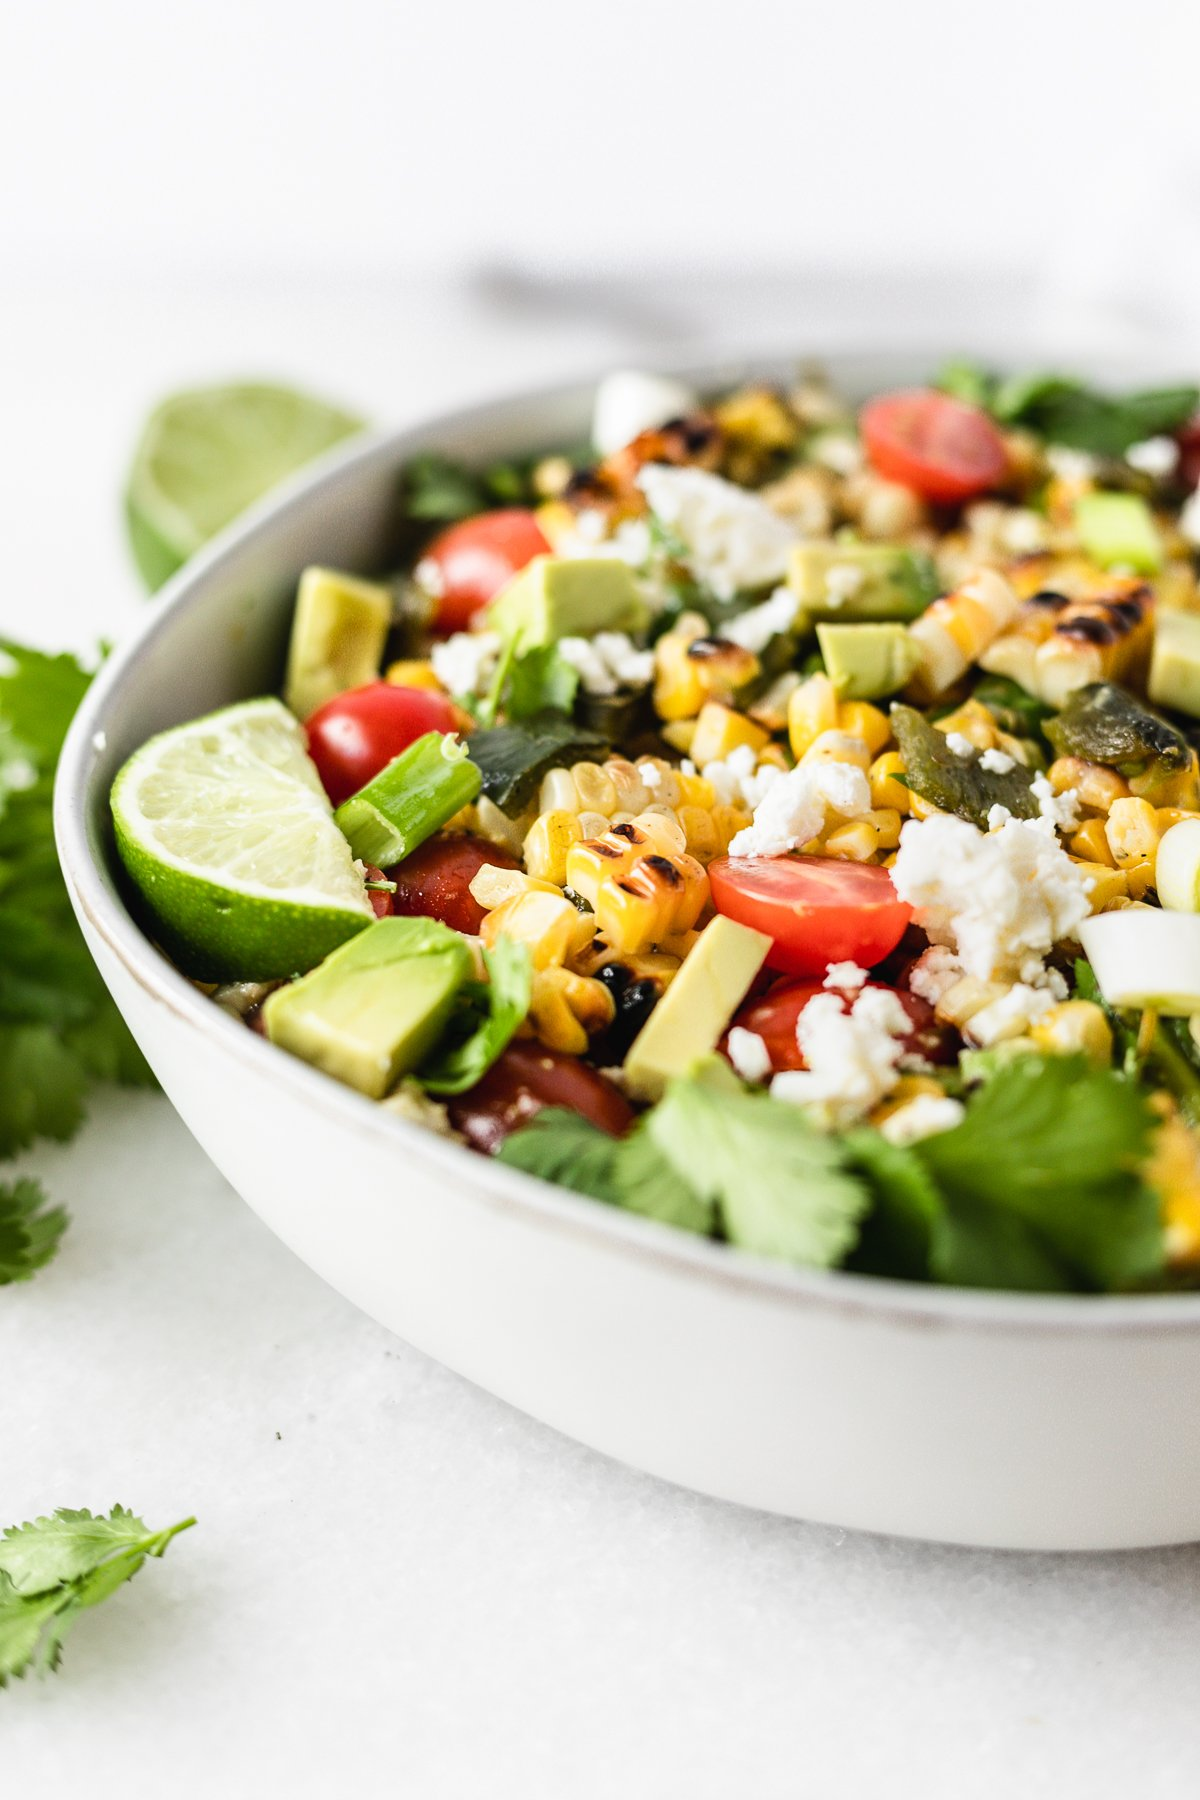 This grilled corn summer salad features grilled fresh corn and poblanos with fresh tomatoes and avocado for a delicious summer salad that's perfect for cookouts! (gluten-free, vegetarian) | via livelytable.com